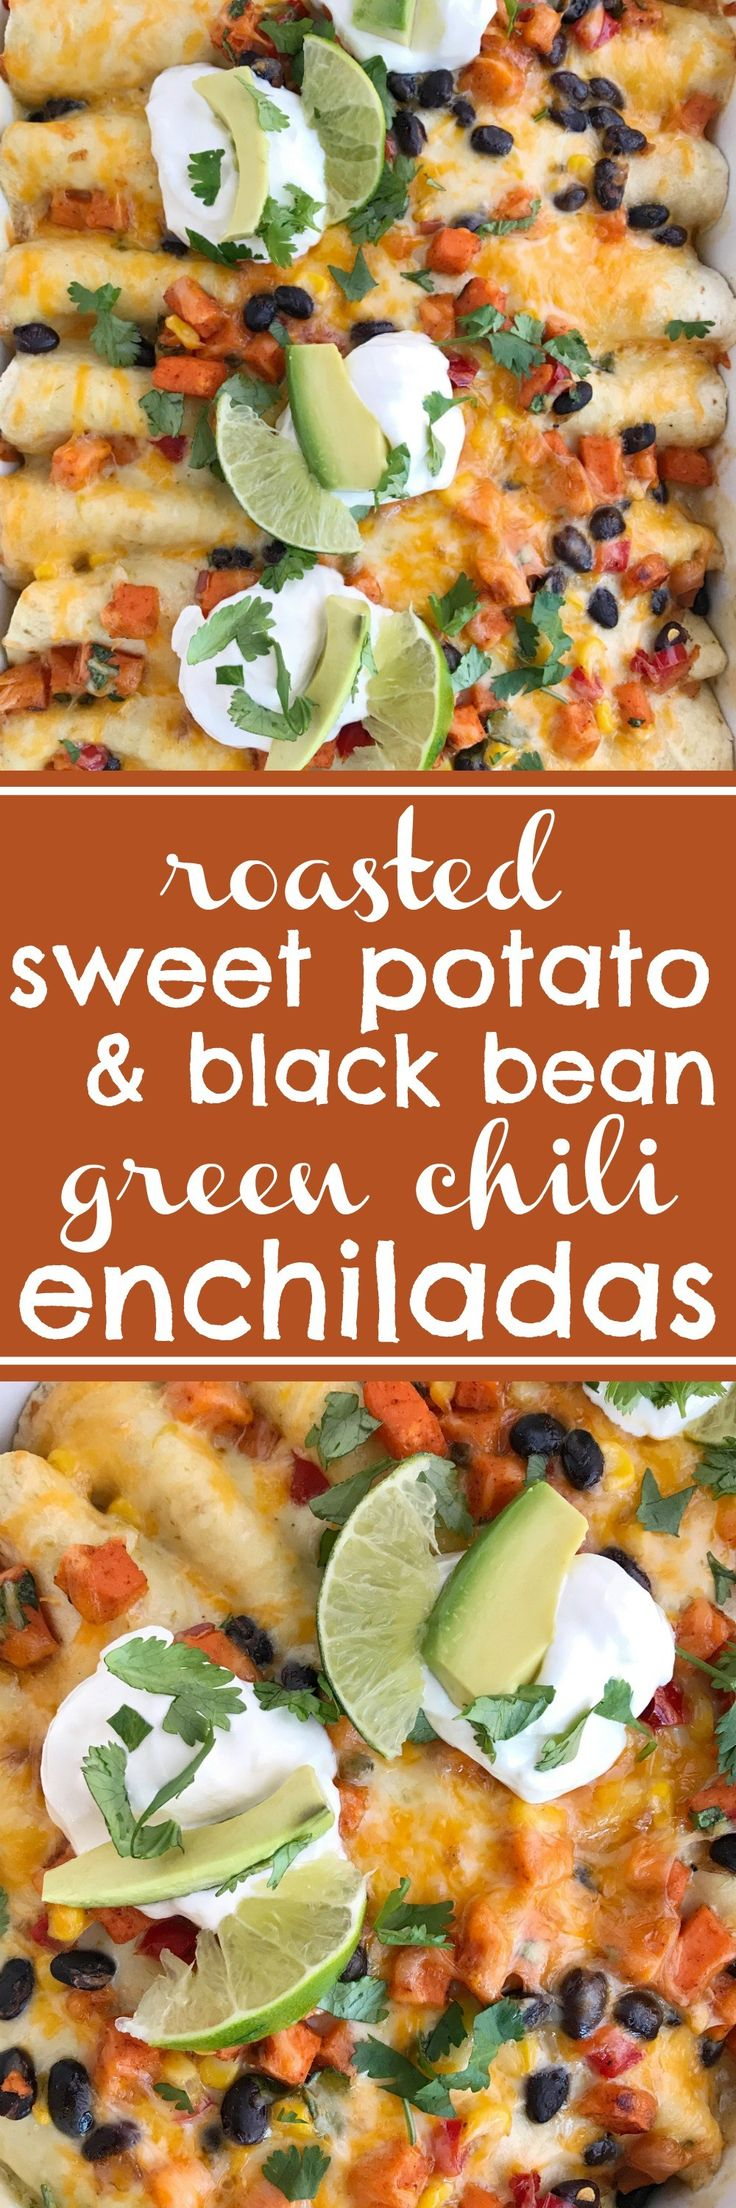 Roasted sweet potato black bean enchiladas are a delicious twist to classic enchiladas. Sweet potatoes are roasted in the oven until tender with spices and other vegetables. Roll up the mixture inside soft flour tortillas with some cheese, and top it off with an easy and creamy green chili sauce. Serve with your …